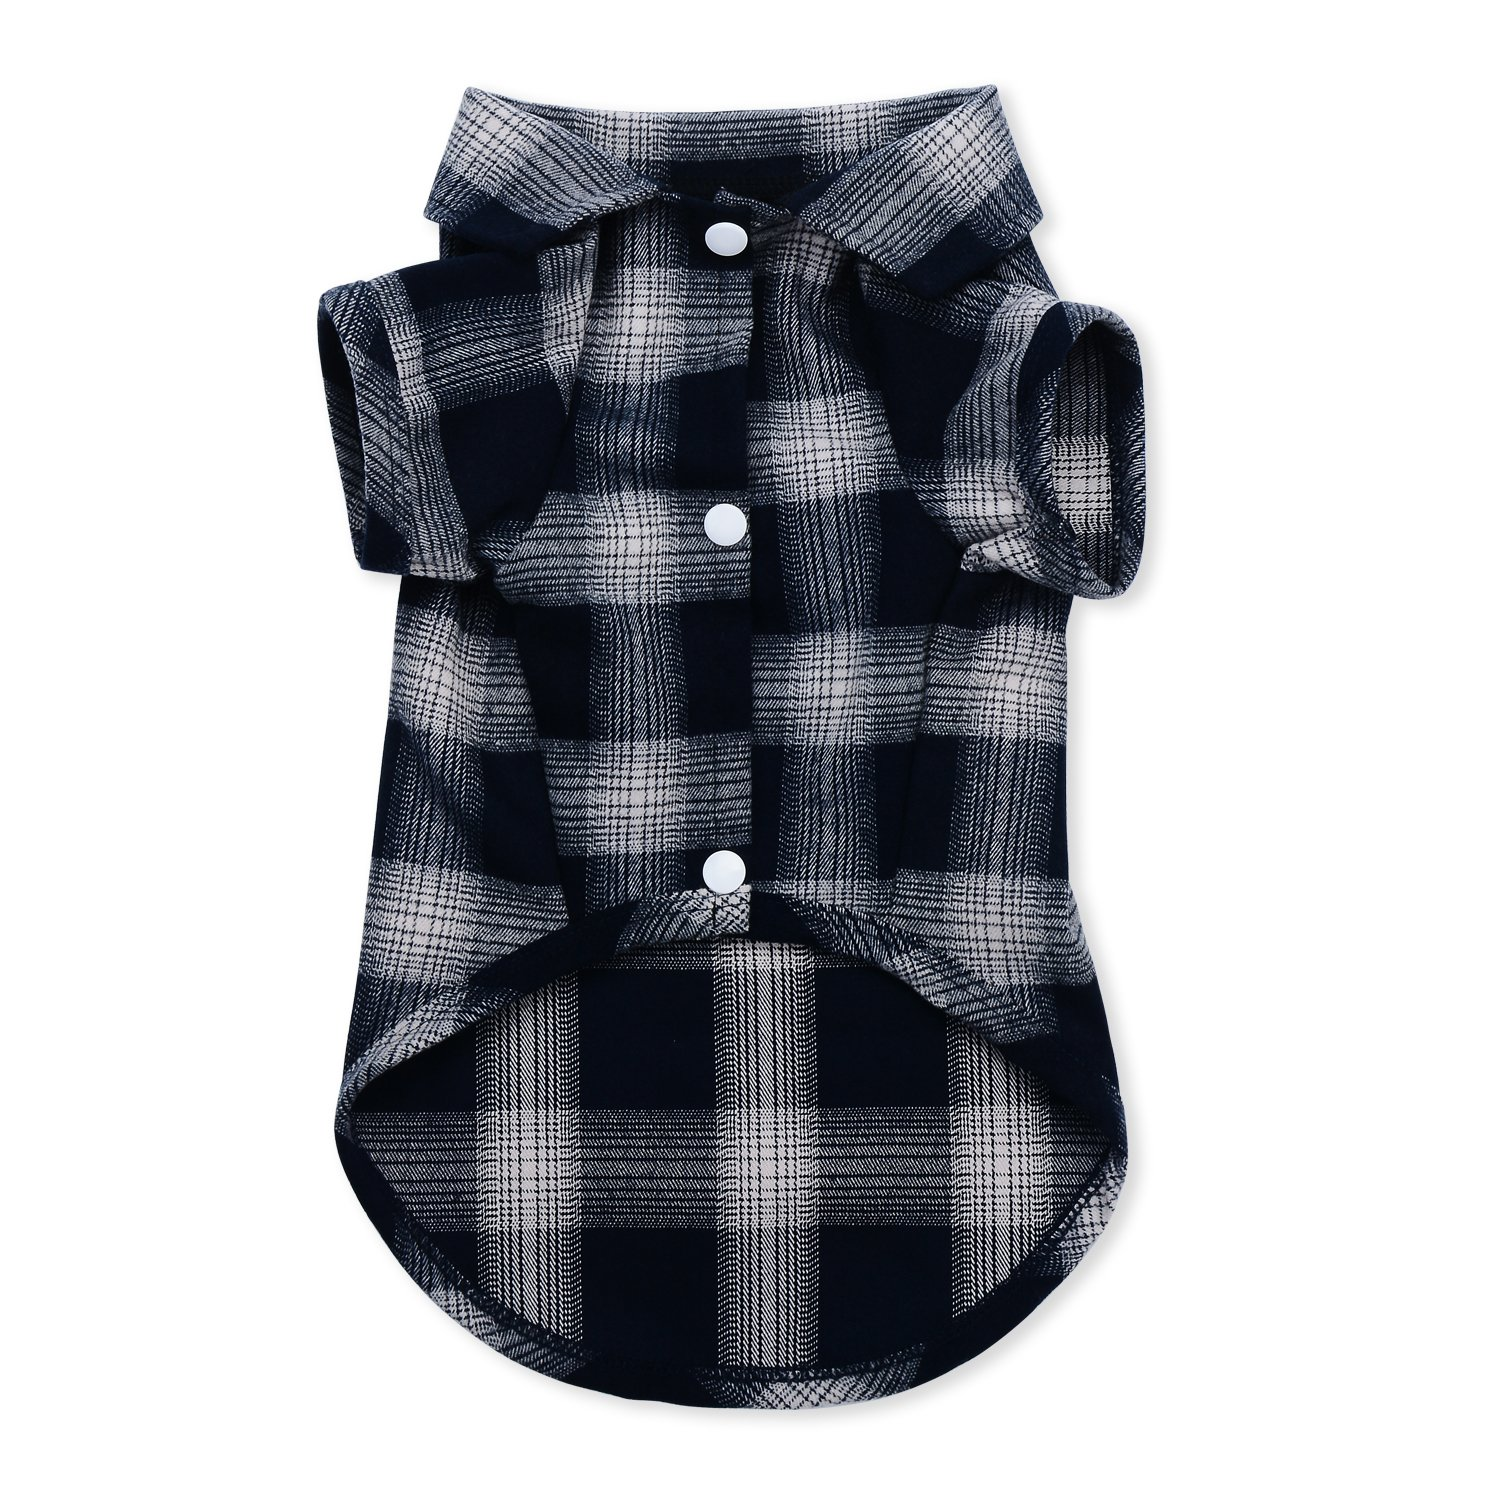 Koneseve Dog Shirt, Pet Plaid Polo Clothes Shirt T-Shirt, Sweater Bottoming Shirt for Small Dog Cat Puppy Grid Adorable Wearing Stylish Cozy Halloween,Christmas Costumes {Blue;XXL} by Koneseve